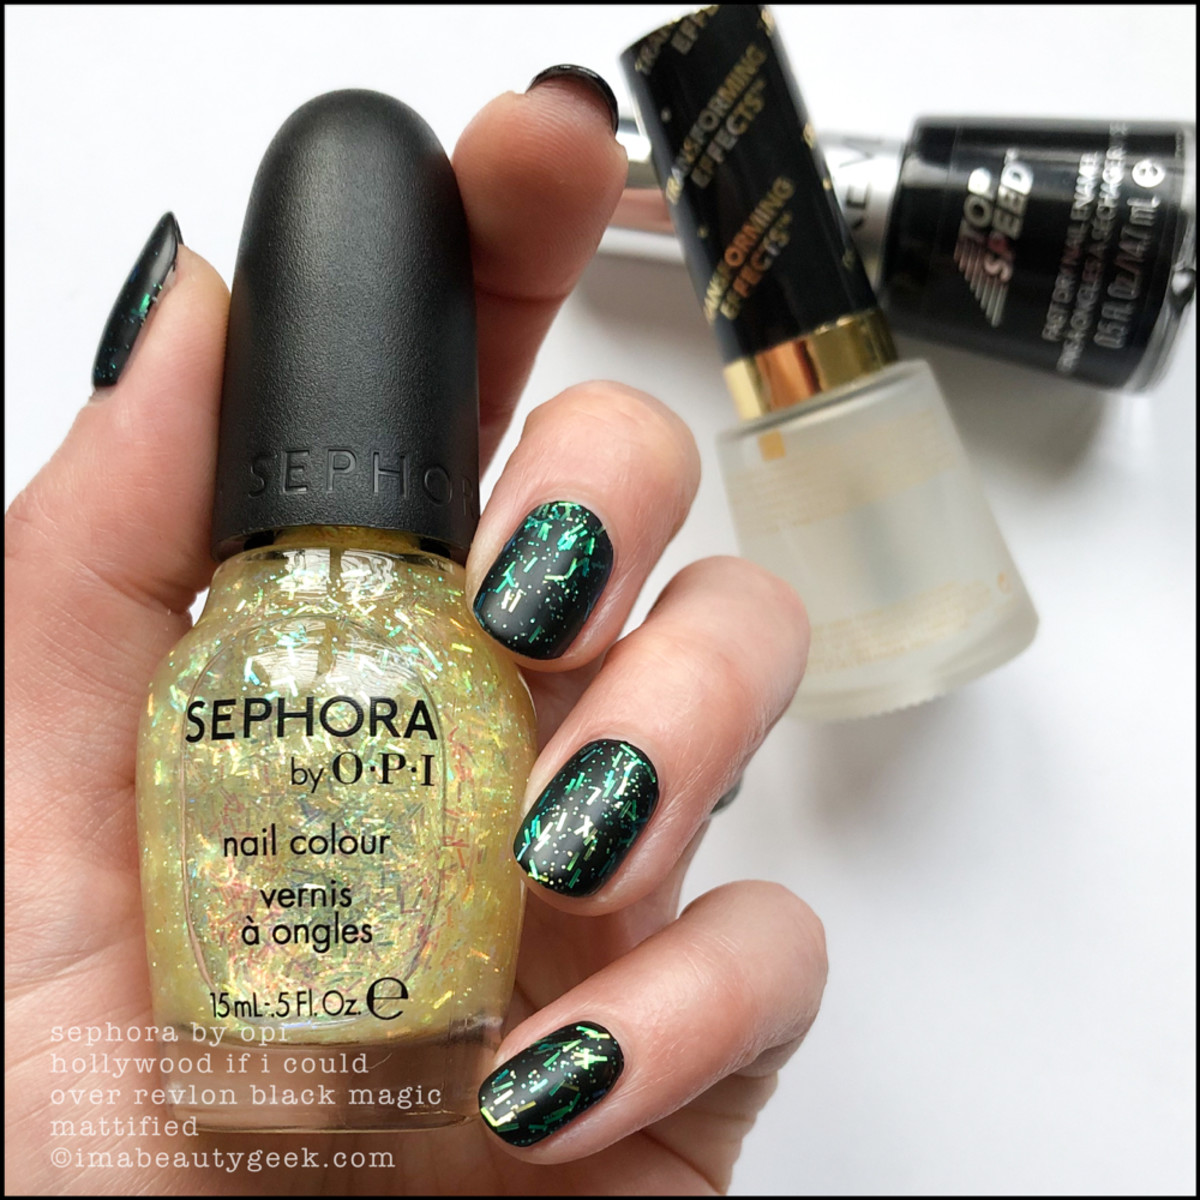 Sephora by OPI Hollywood If I Could over Black Magic Mattified